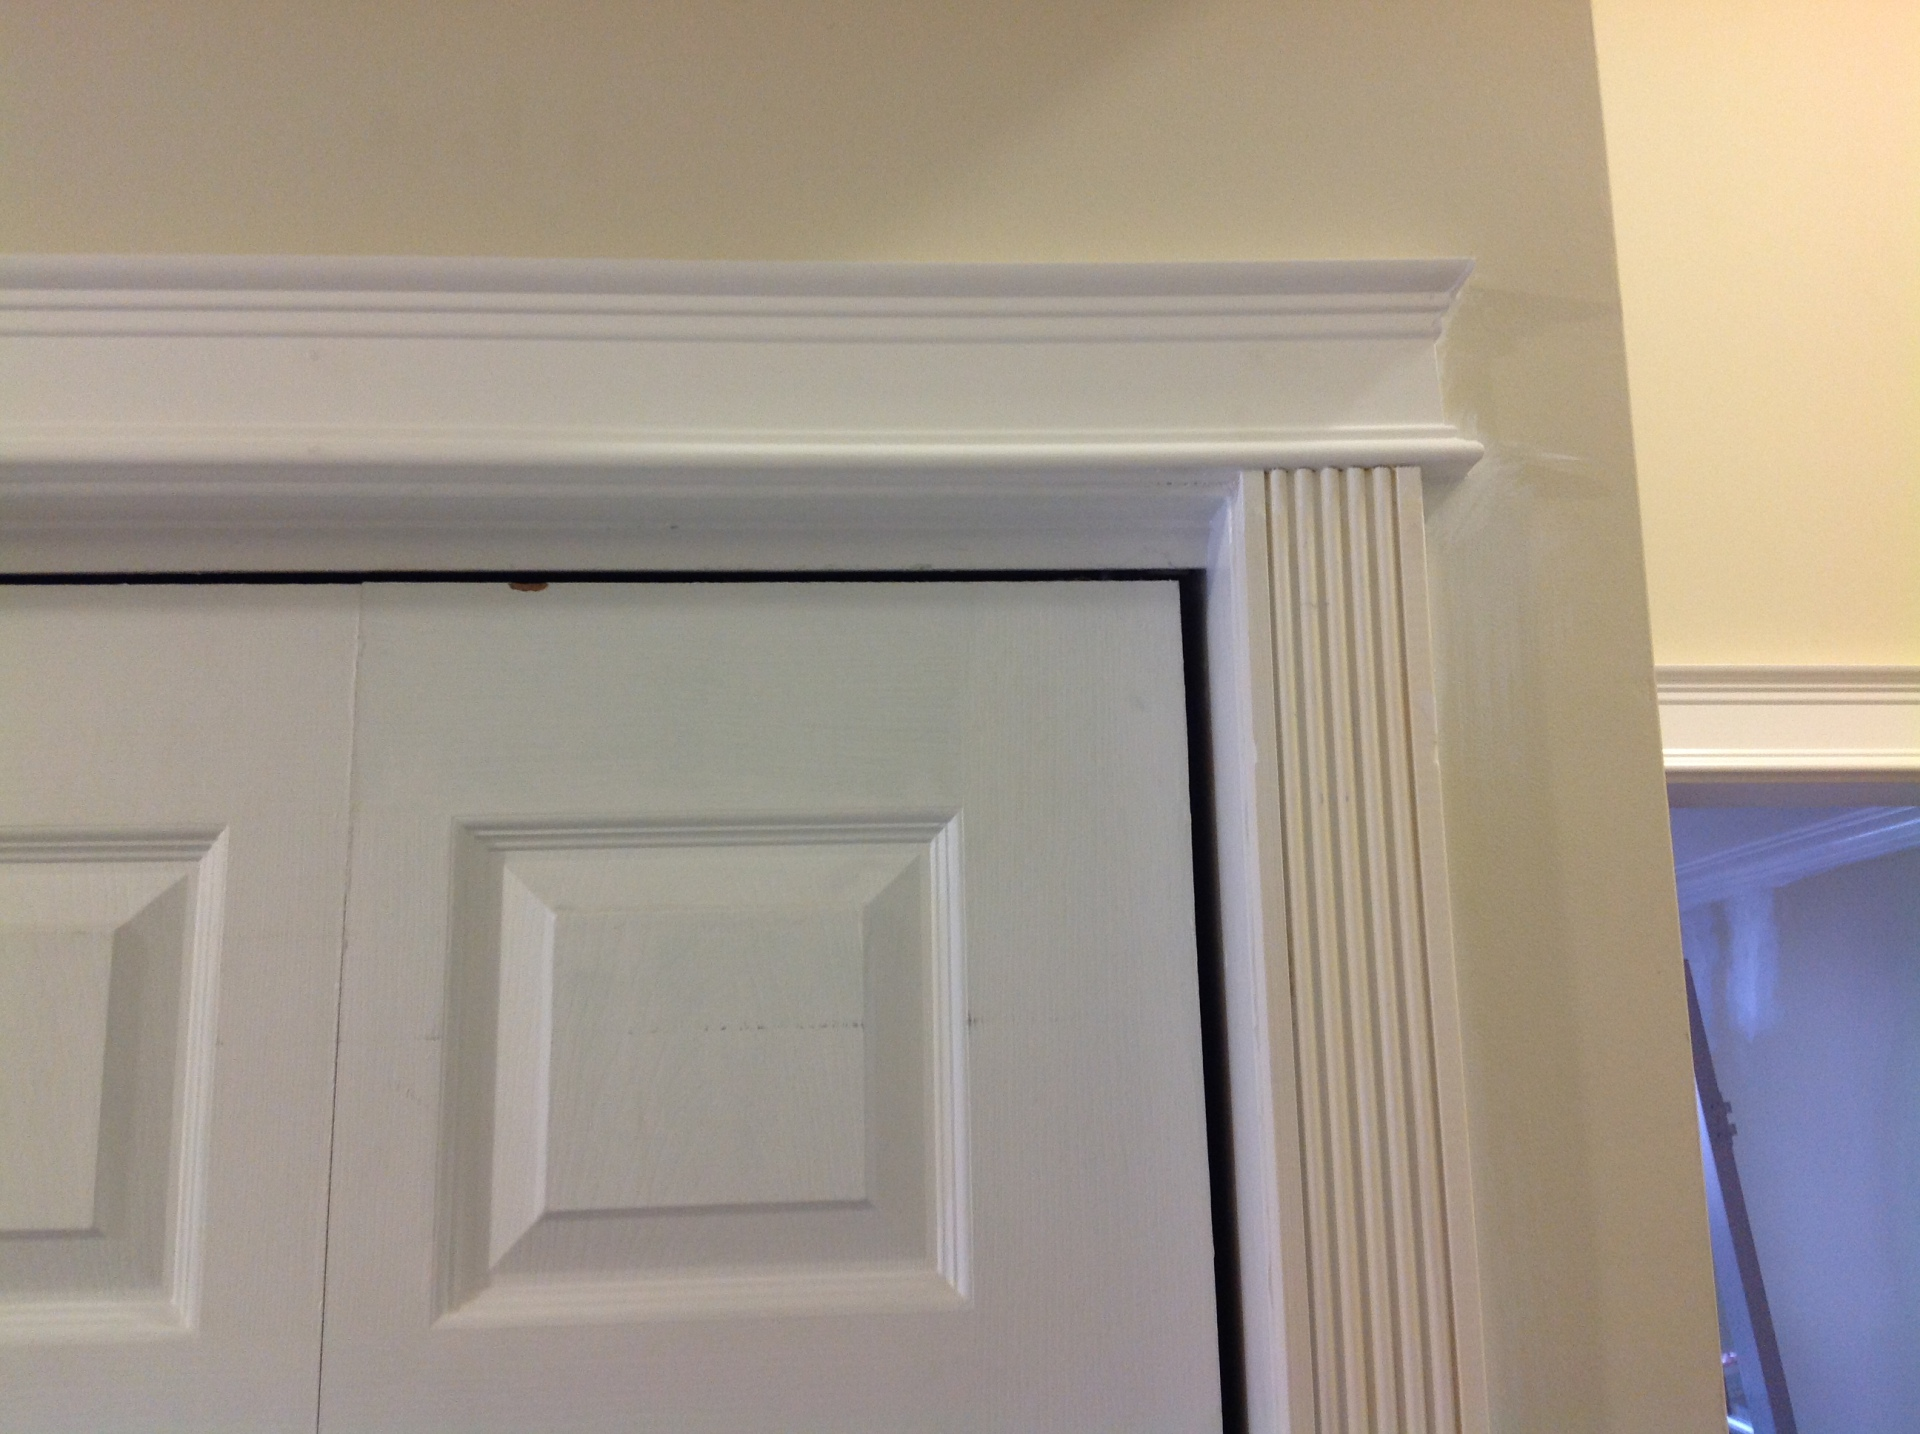 Mantel work over bi-fold door